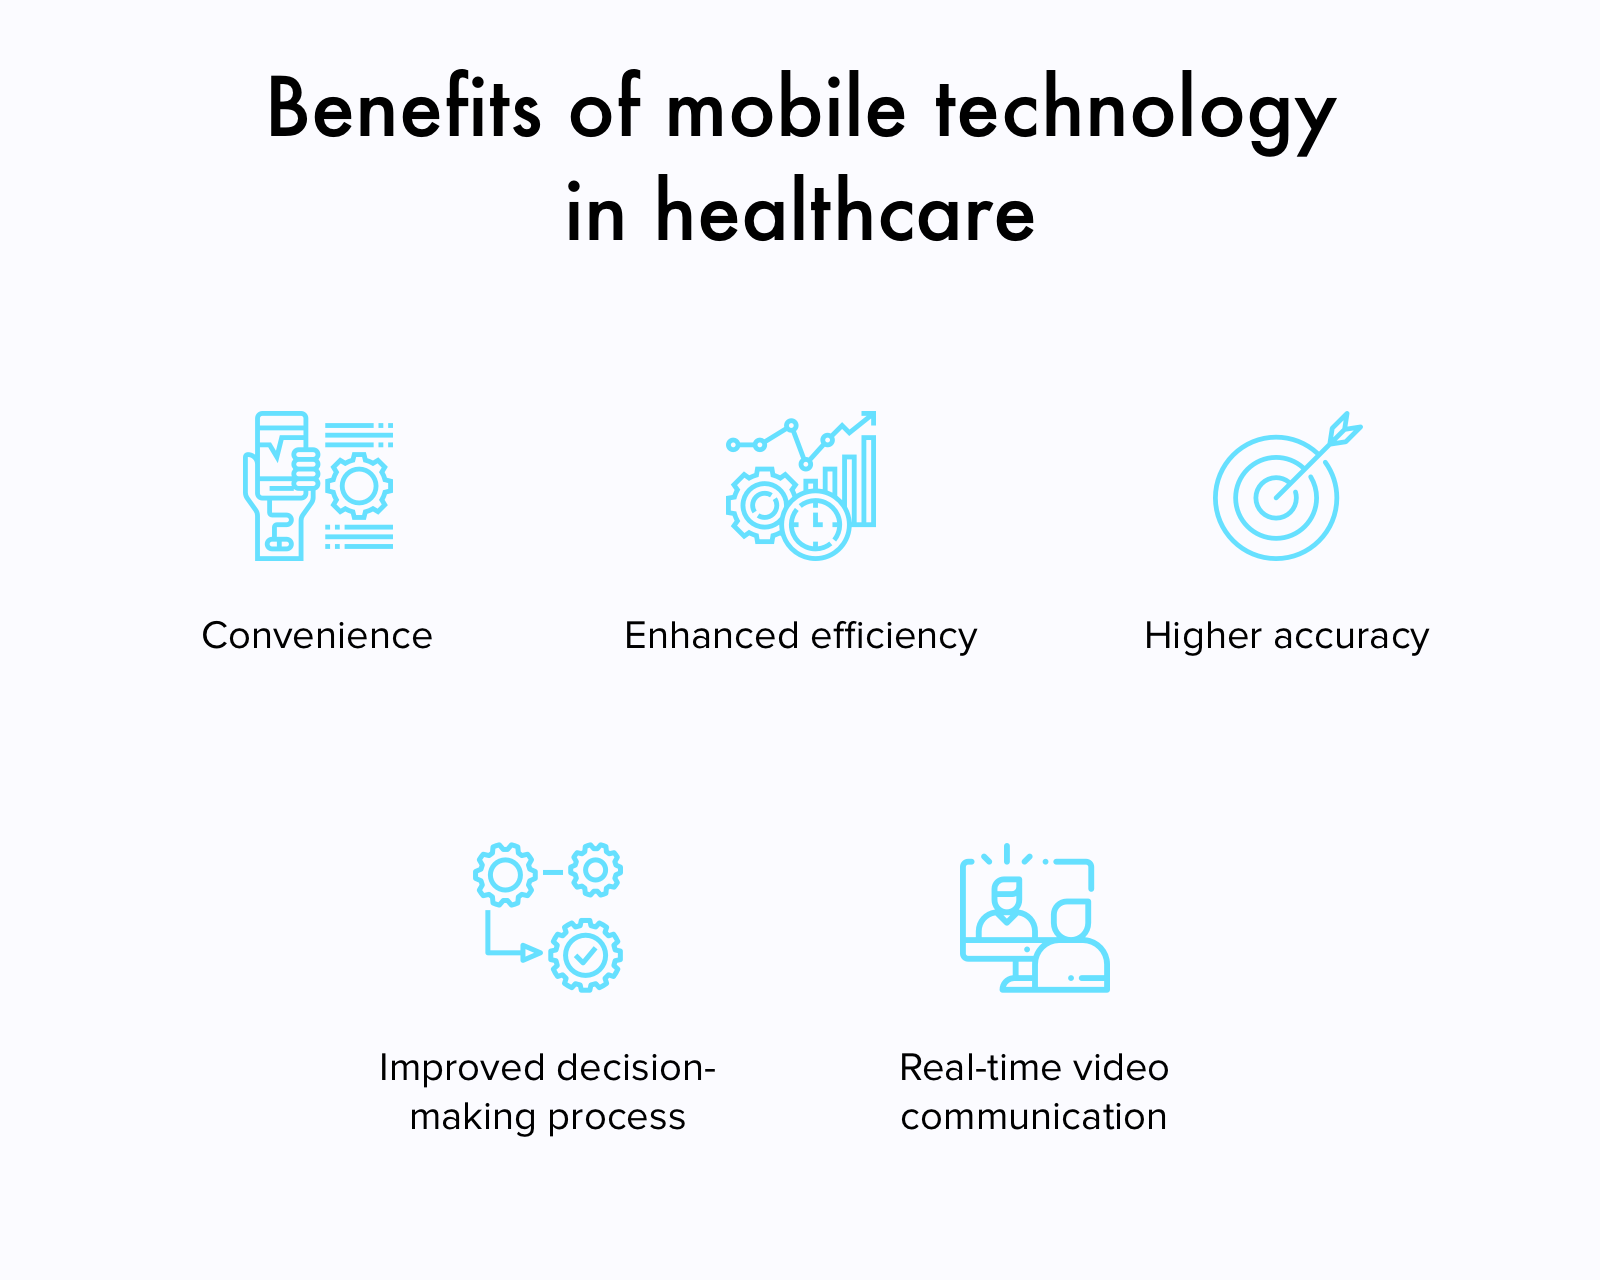 mobile devices and apps for healthcare professionals uses and benefits